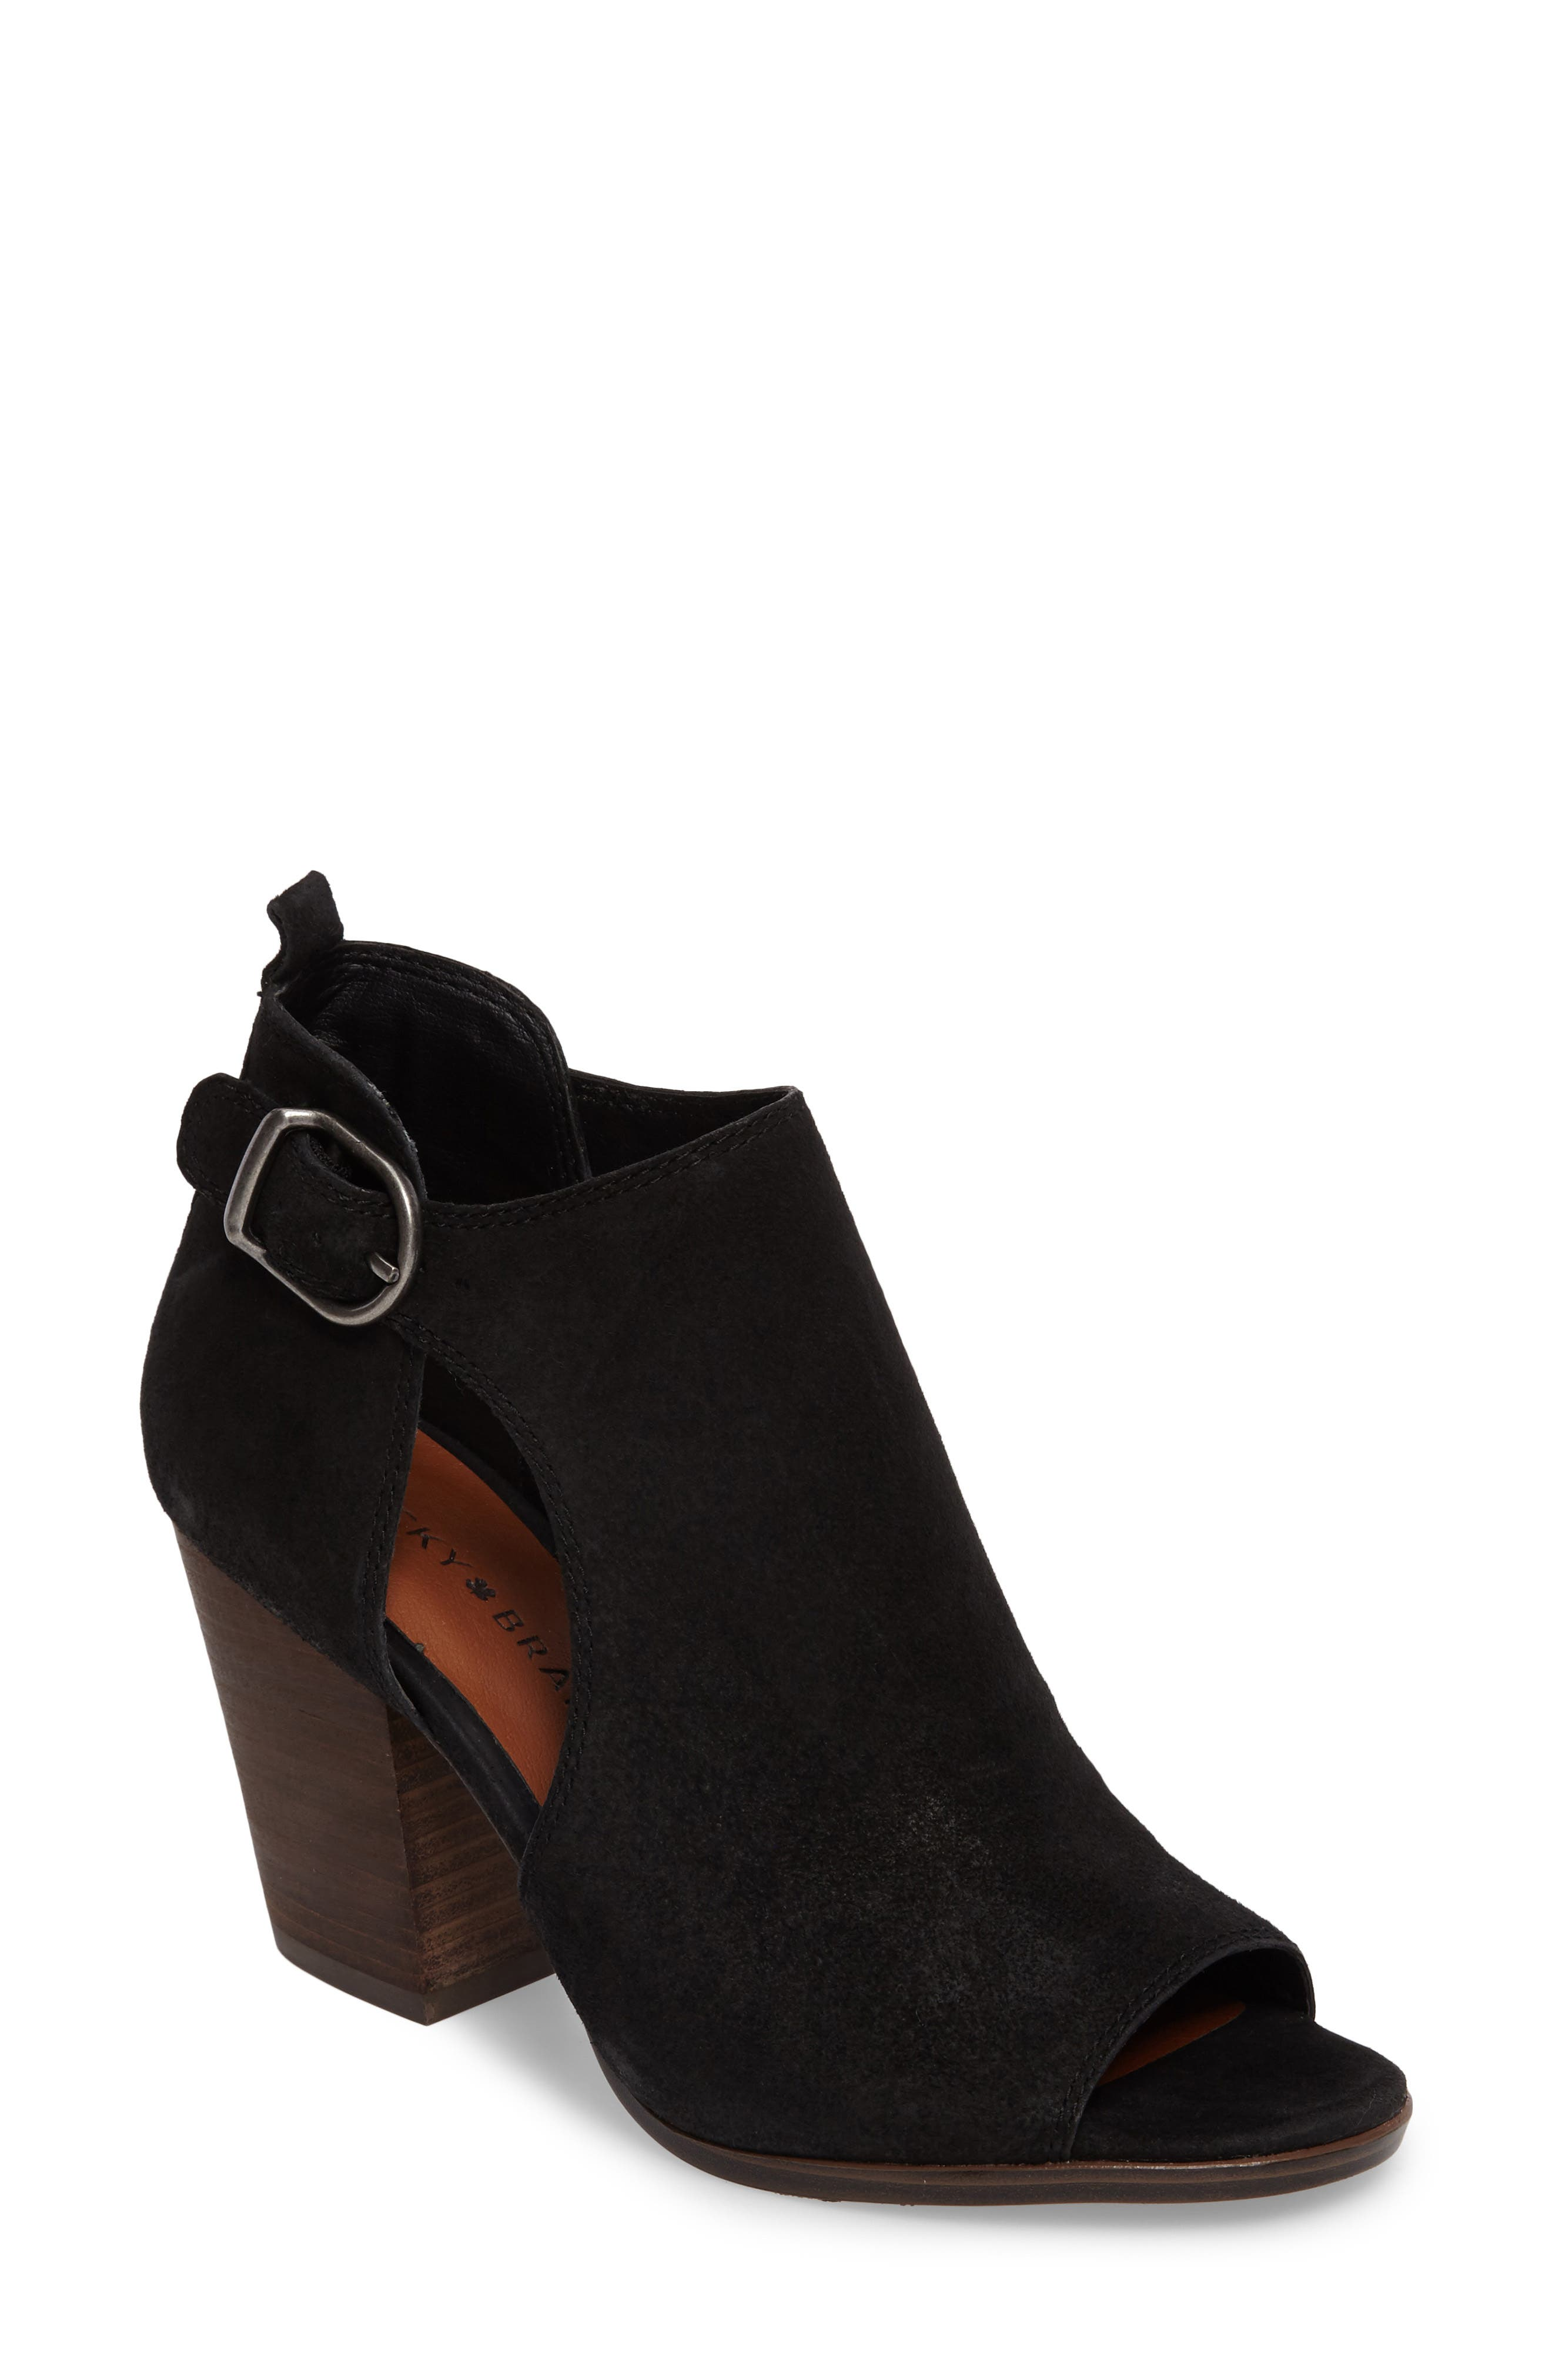 Oona Open Side Bootie,                             Main thumbnail 1, color,                             001